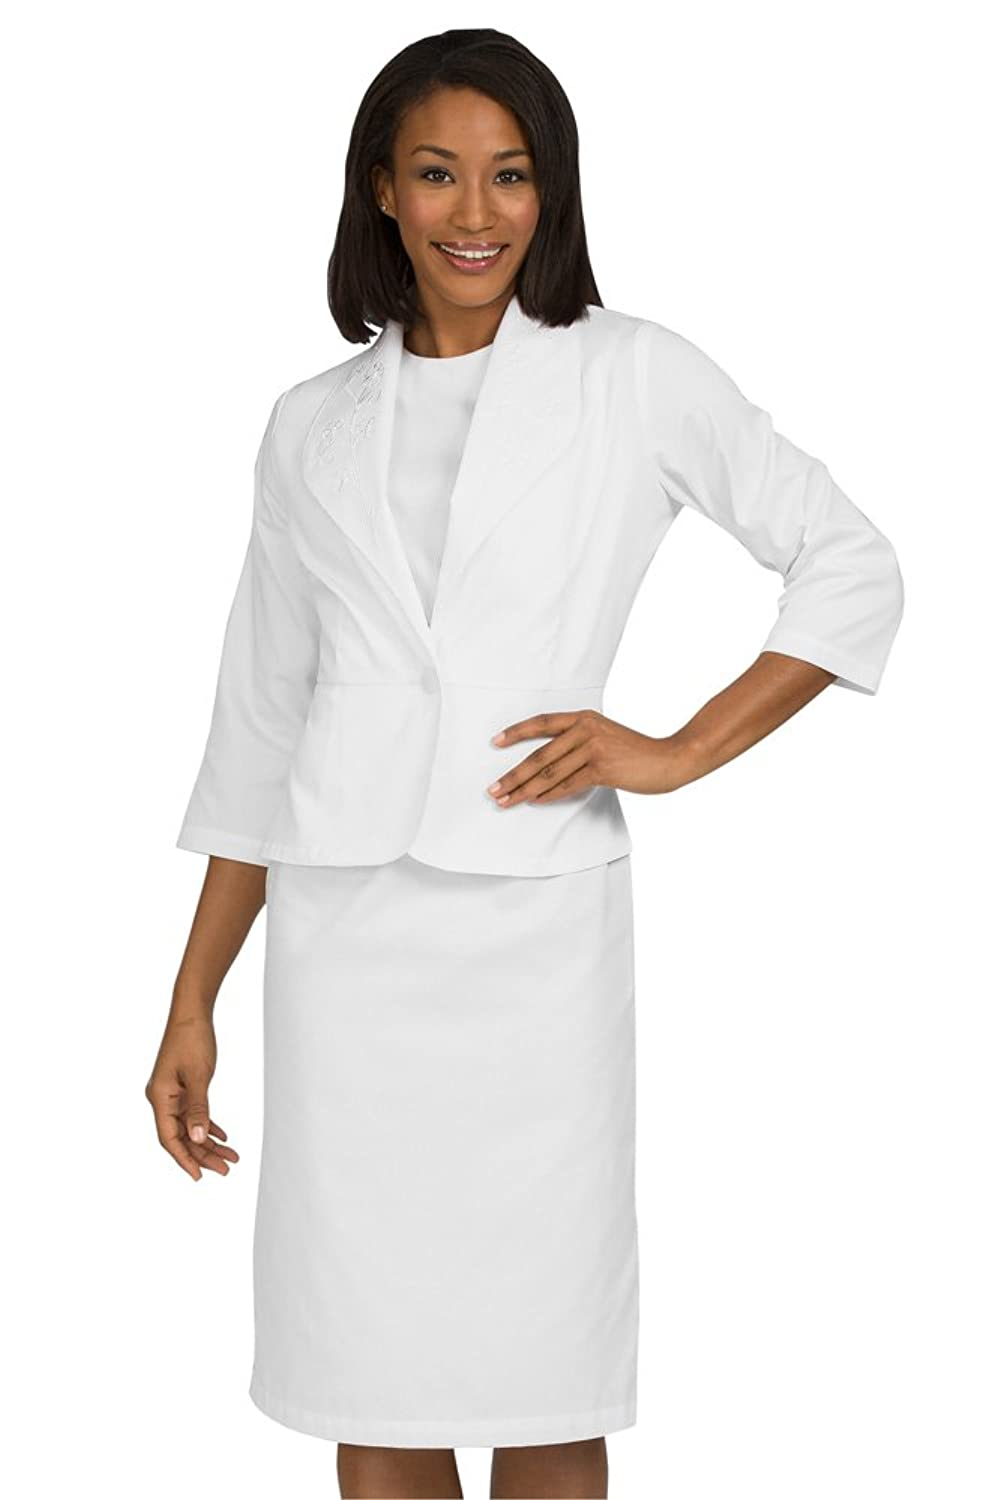 3/4 Sleeve White Penelope Dress with Fitted Jacket by Peaches Uniforms. Perfect for Nurses!